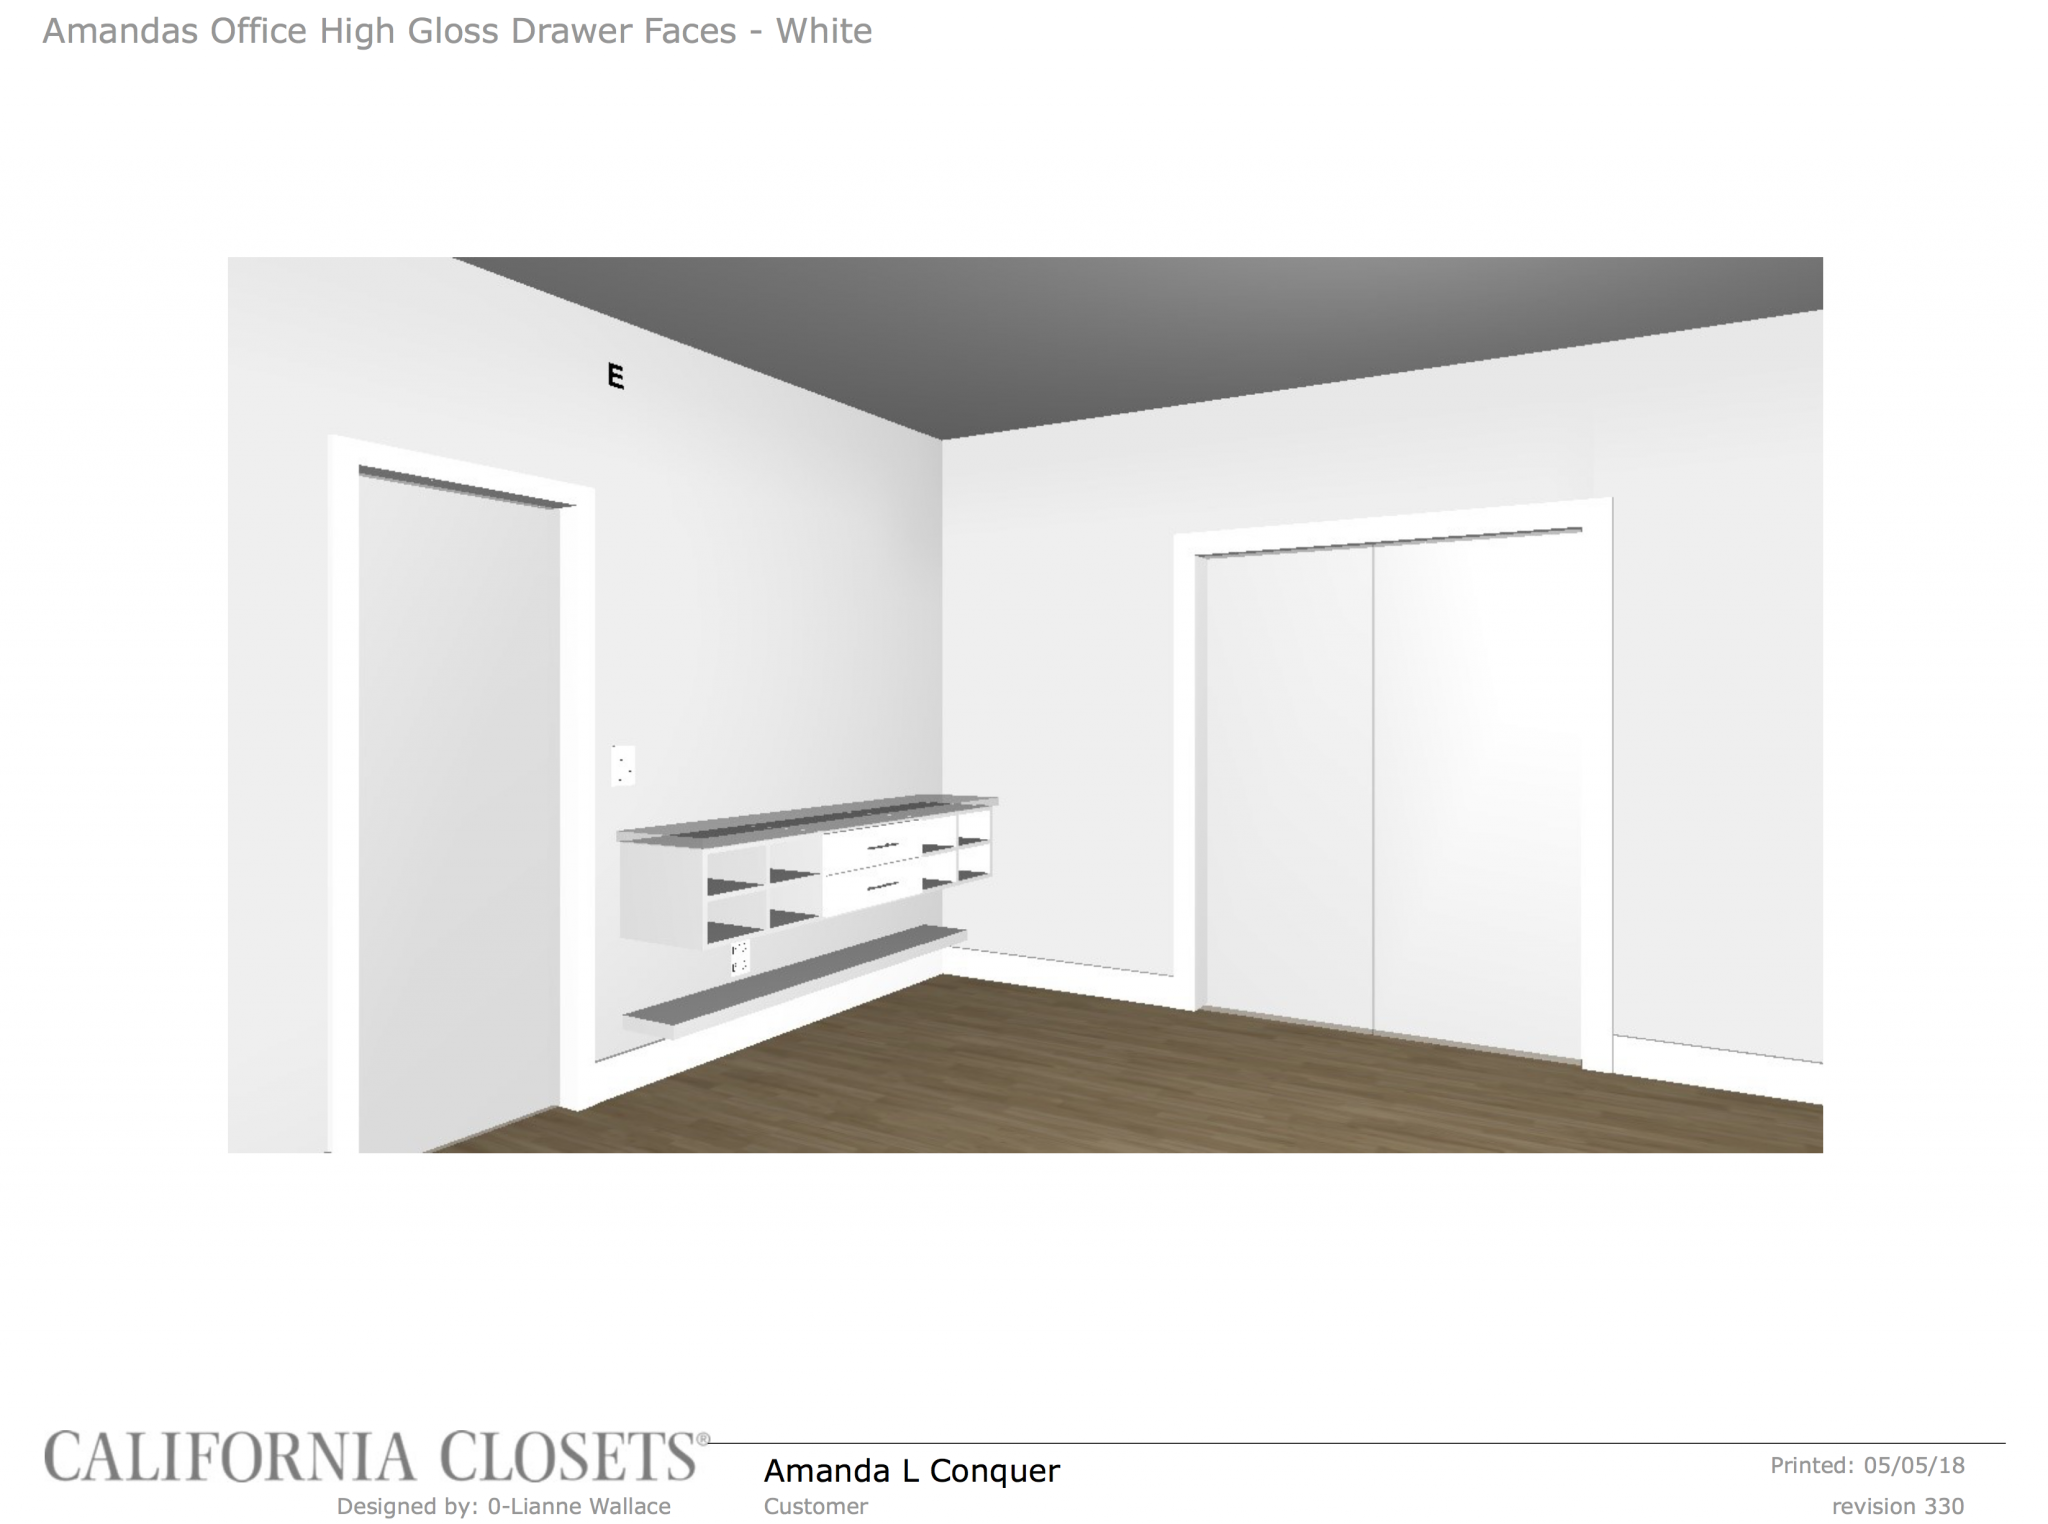 California closets digital design mock up for office